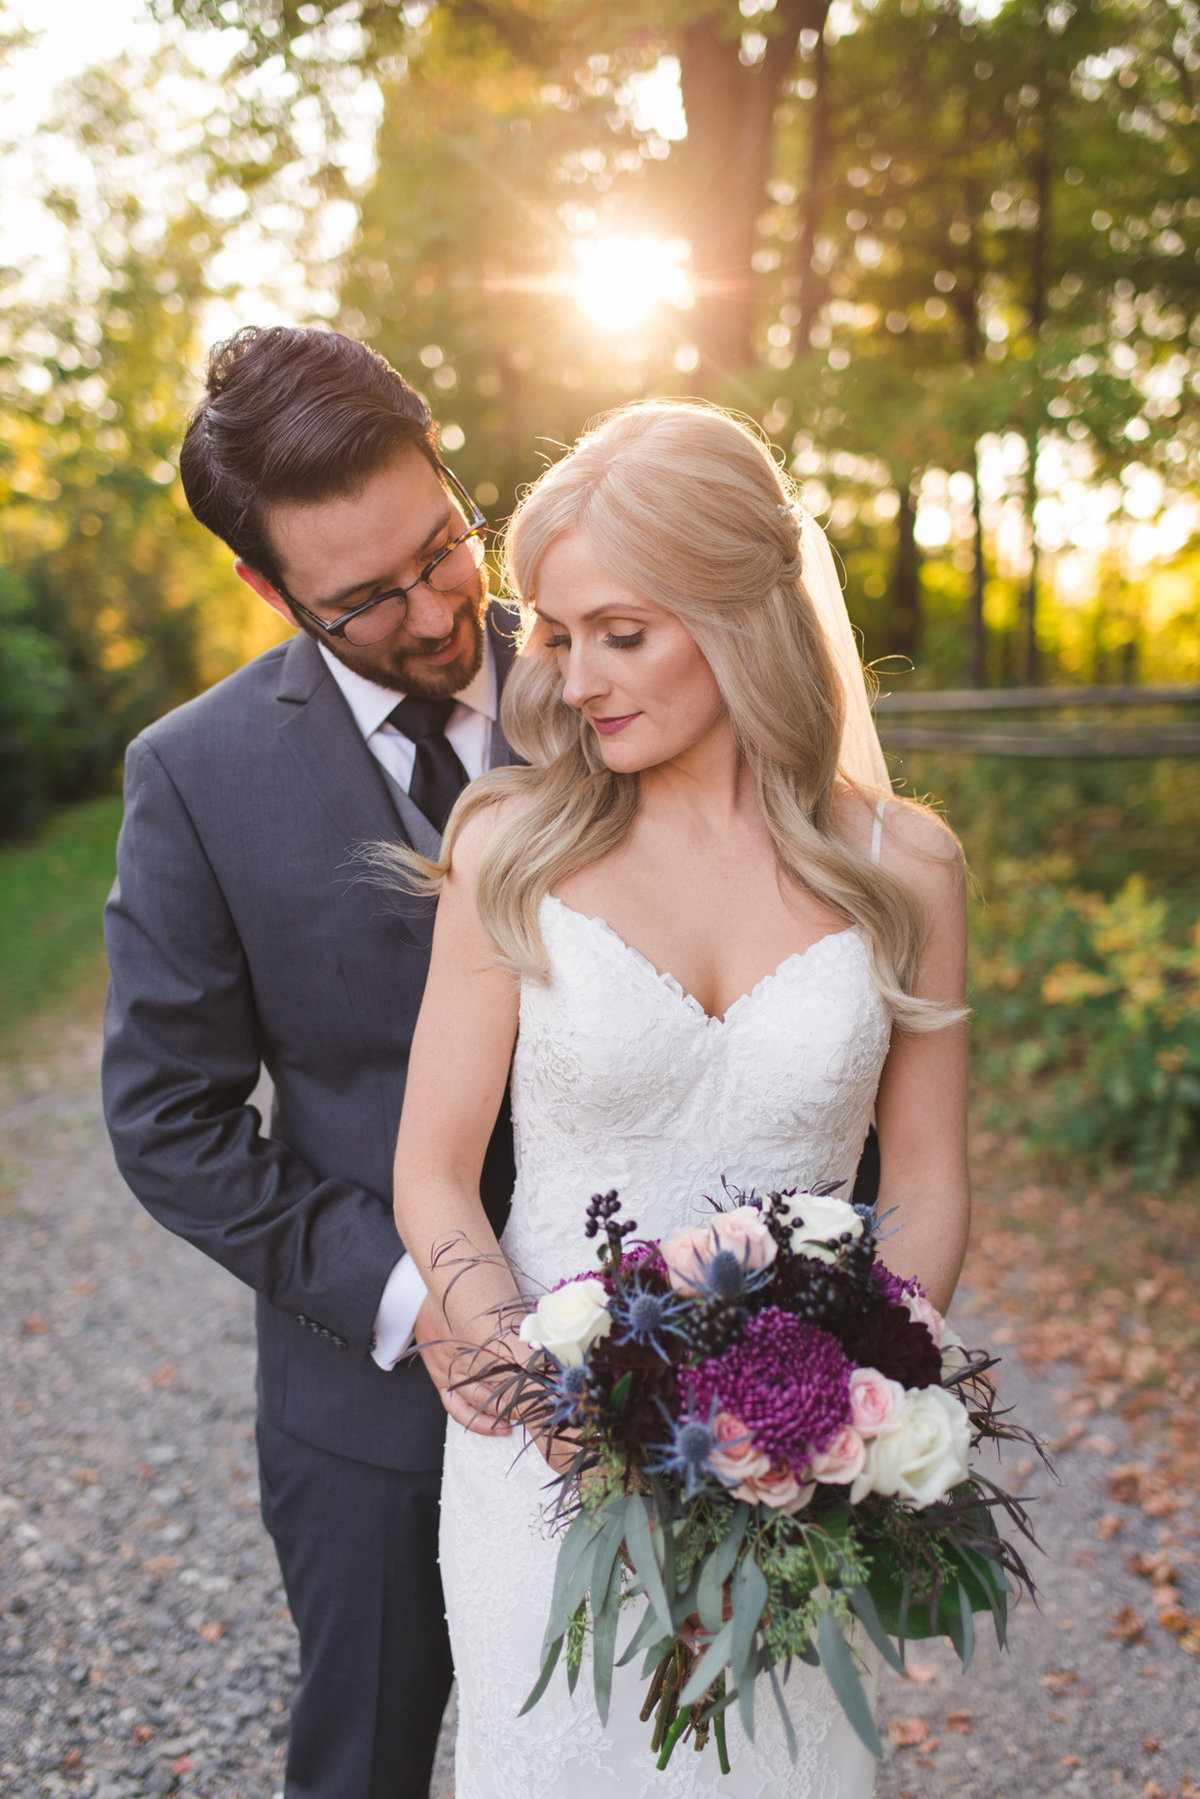 couple standing together at sunset with beautiful floral bouquet